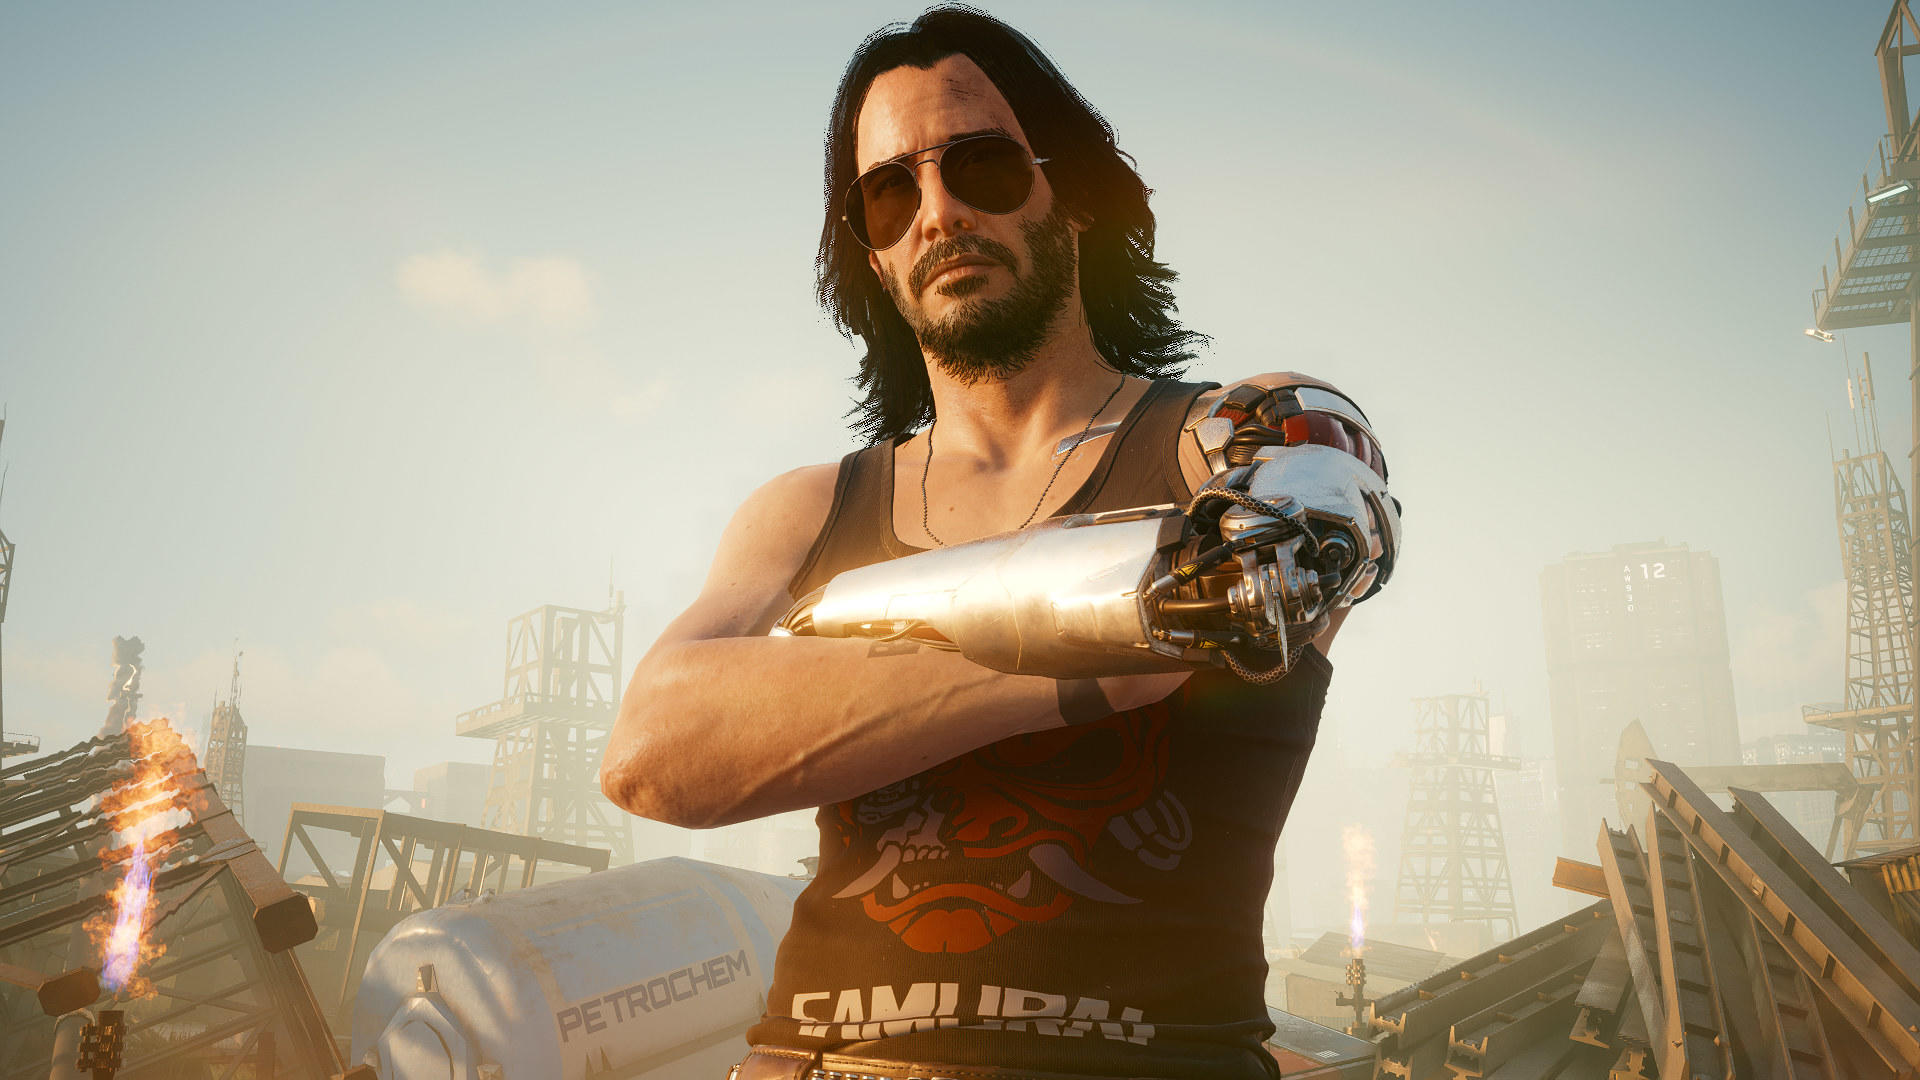 Cyberpunk 2077 Patch 1.1 is now available